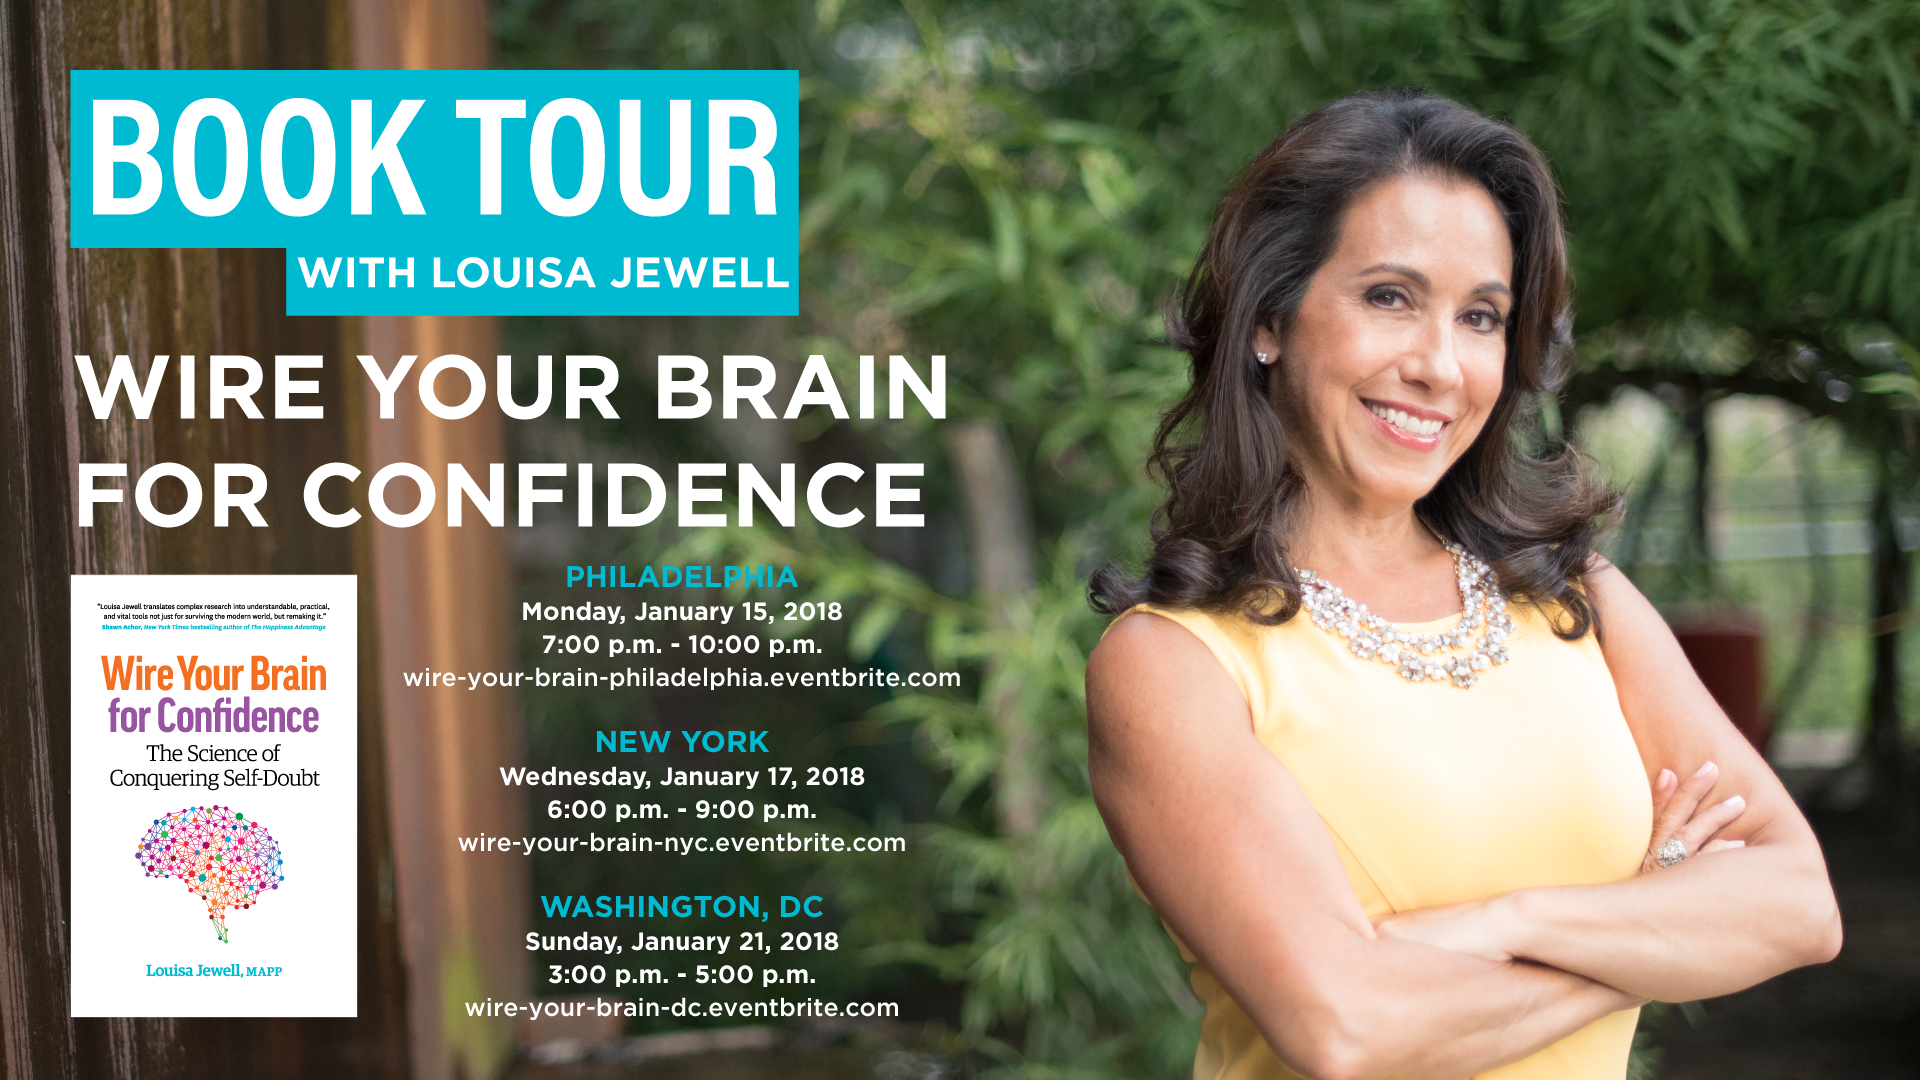 Wire Your Brain for Confidence Book Tour